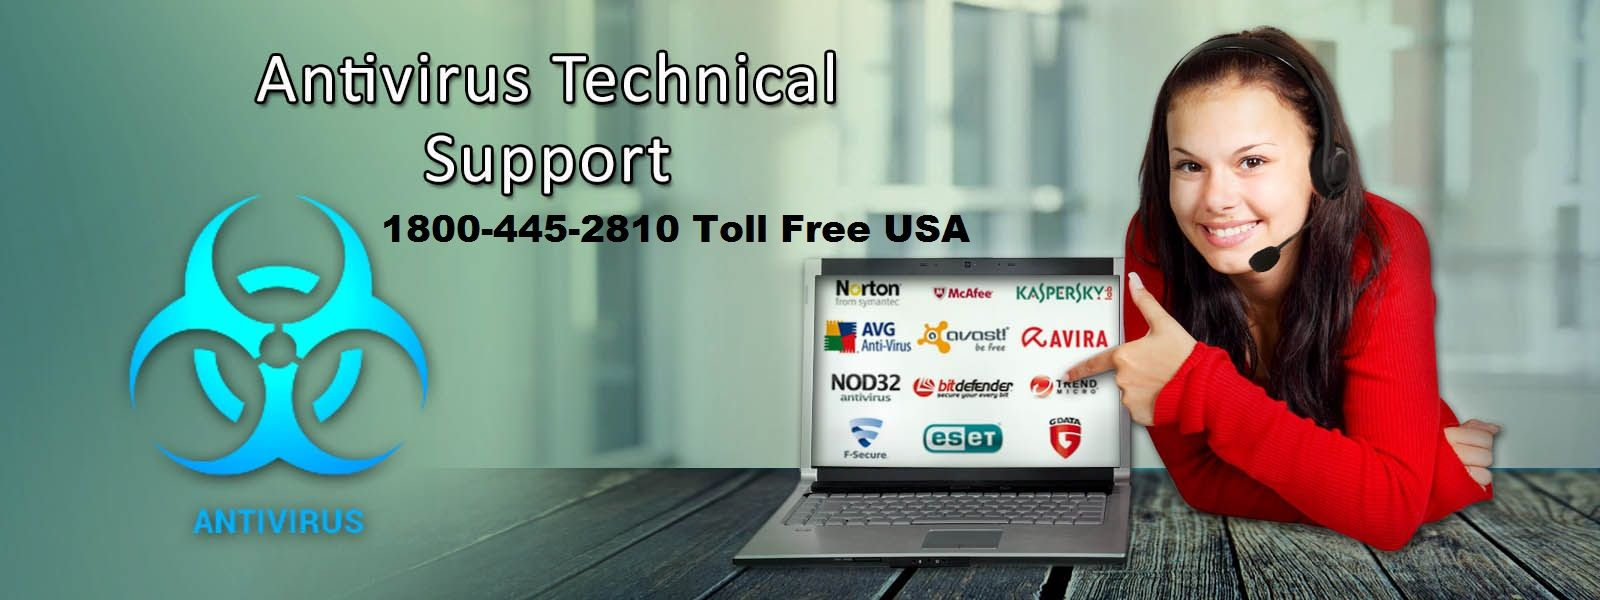 Call Our webroot customer care toll free number anytime and get